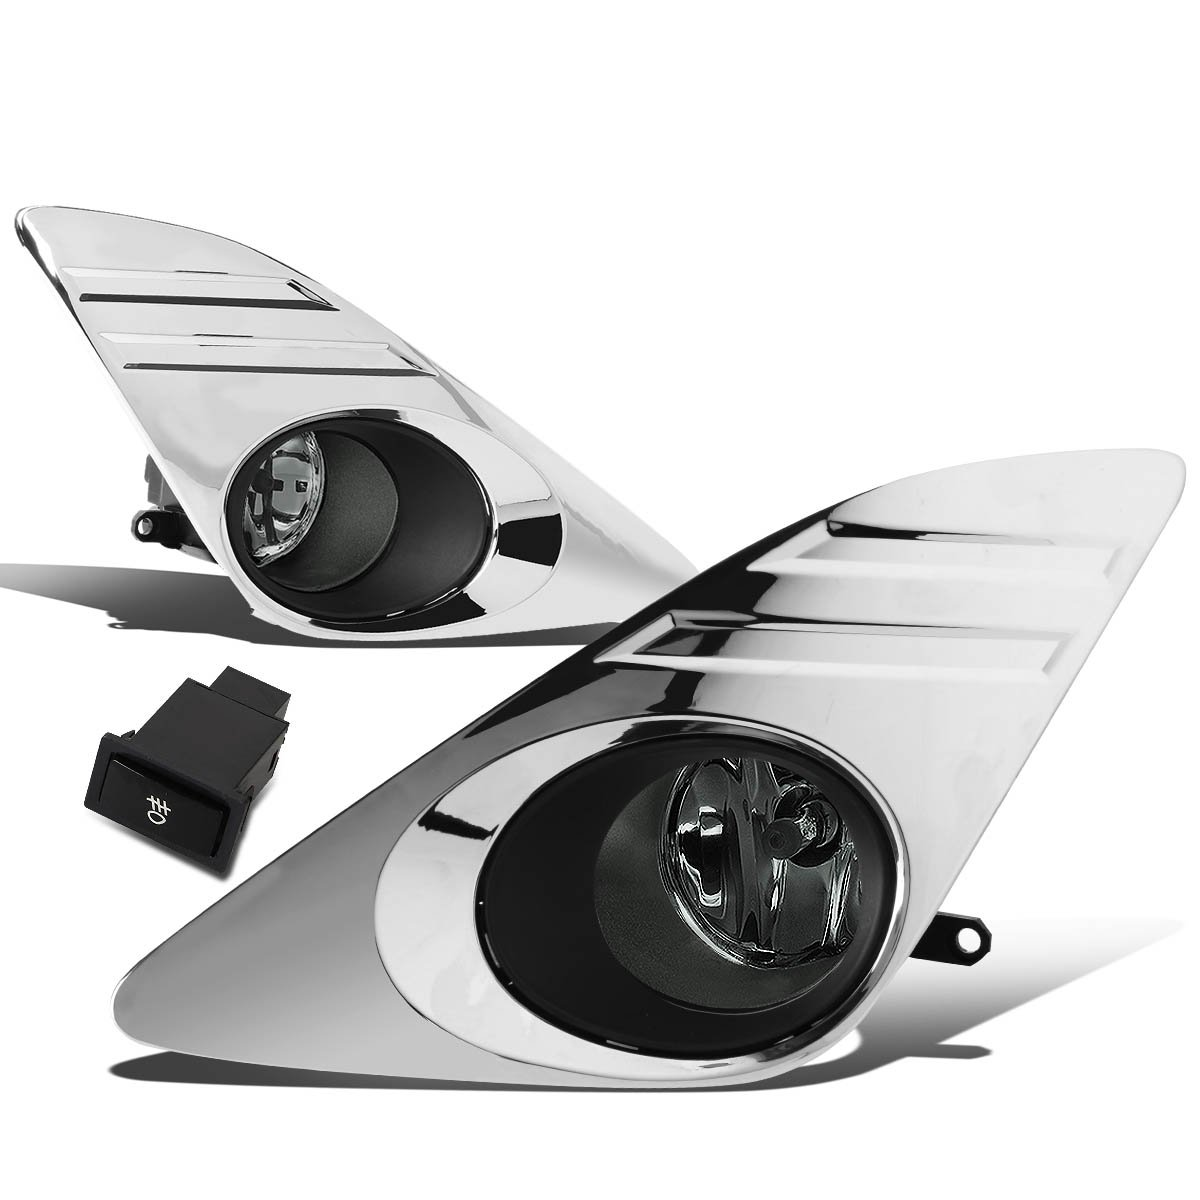 Replacement for Camry XV50 Pair of Bumper Driving Fog Lights w/Bezel & Switch (Smoke Lens)